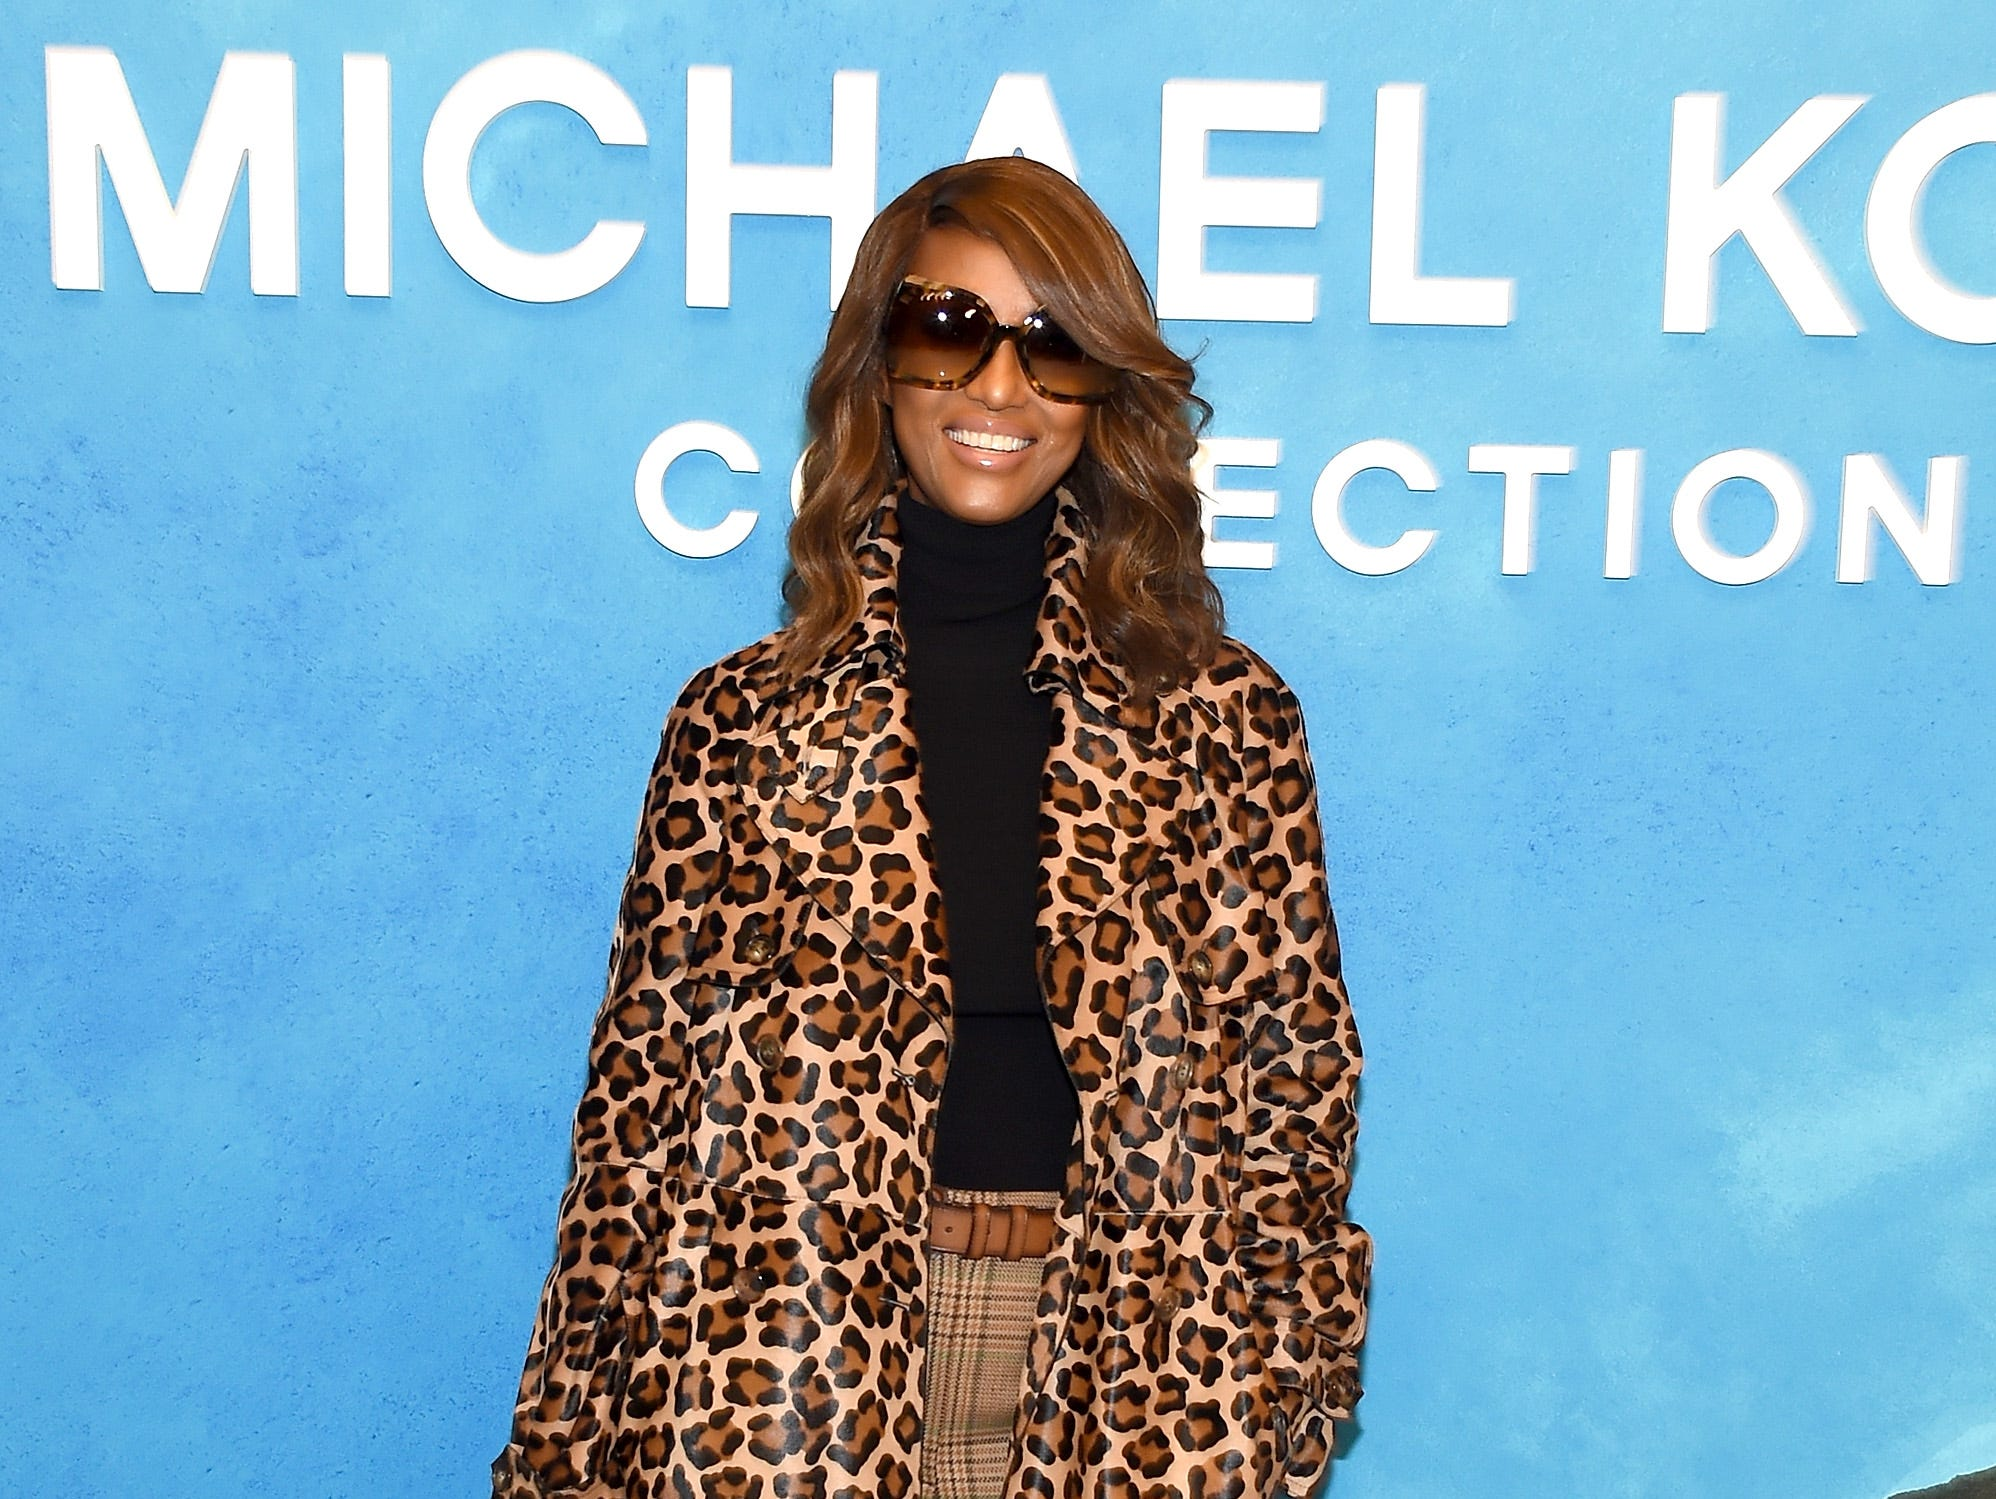 NEW YORK, NY - SEPTEMBER 12:  Iman attends the Michael Kors Collection Spring 2019 Runway Show at Pier 17 on September 12, 2018 in New York City.  (Photo by Larry Busacca/Getty Images for Michael Kors) ORG XMIT: 775216953 ORIG FILE ID: 1032085816